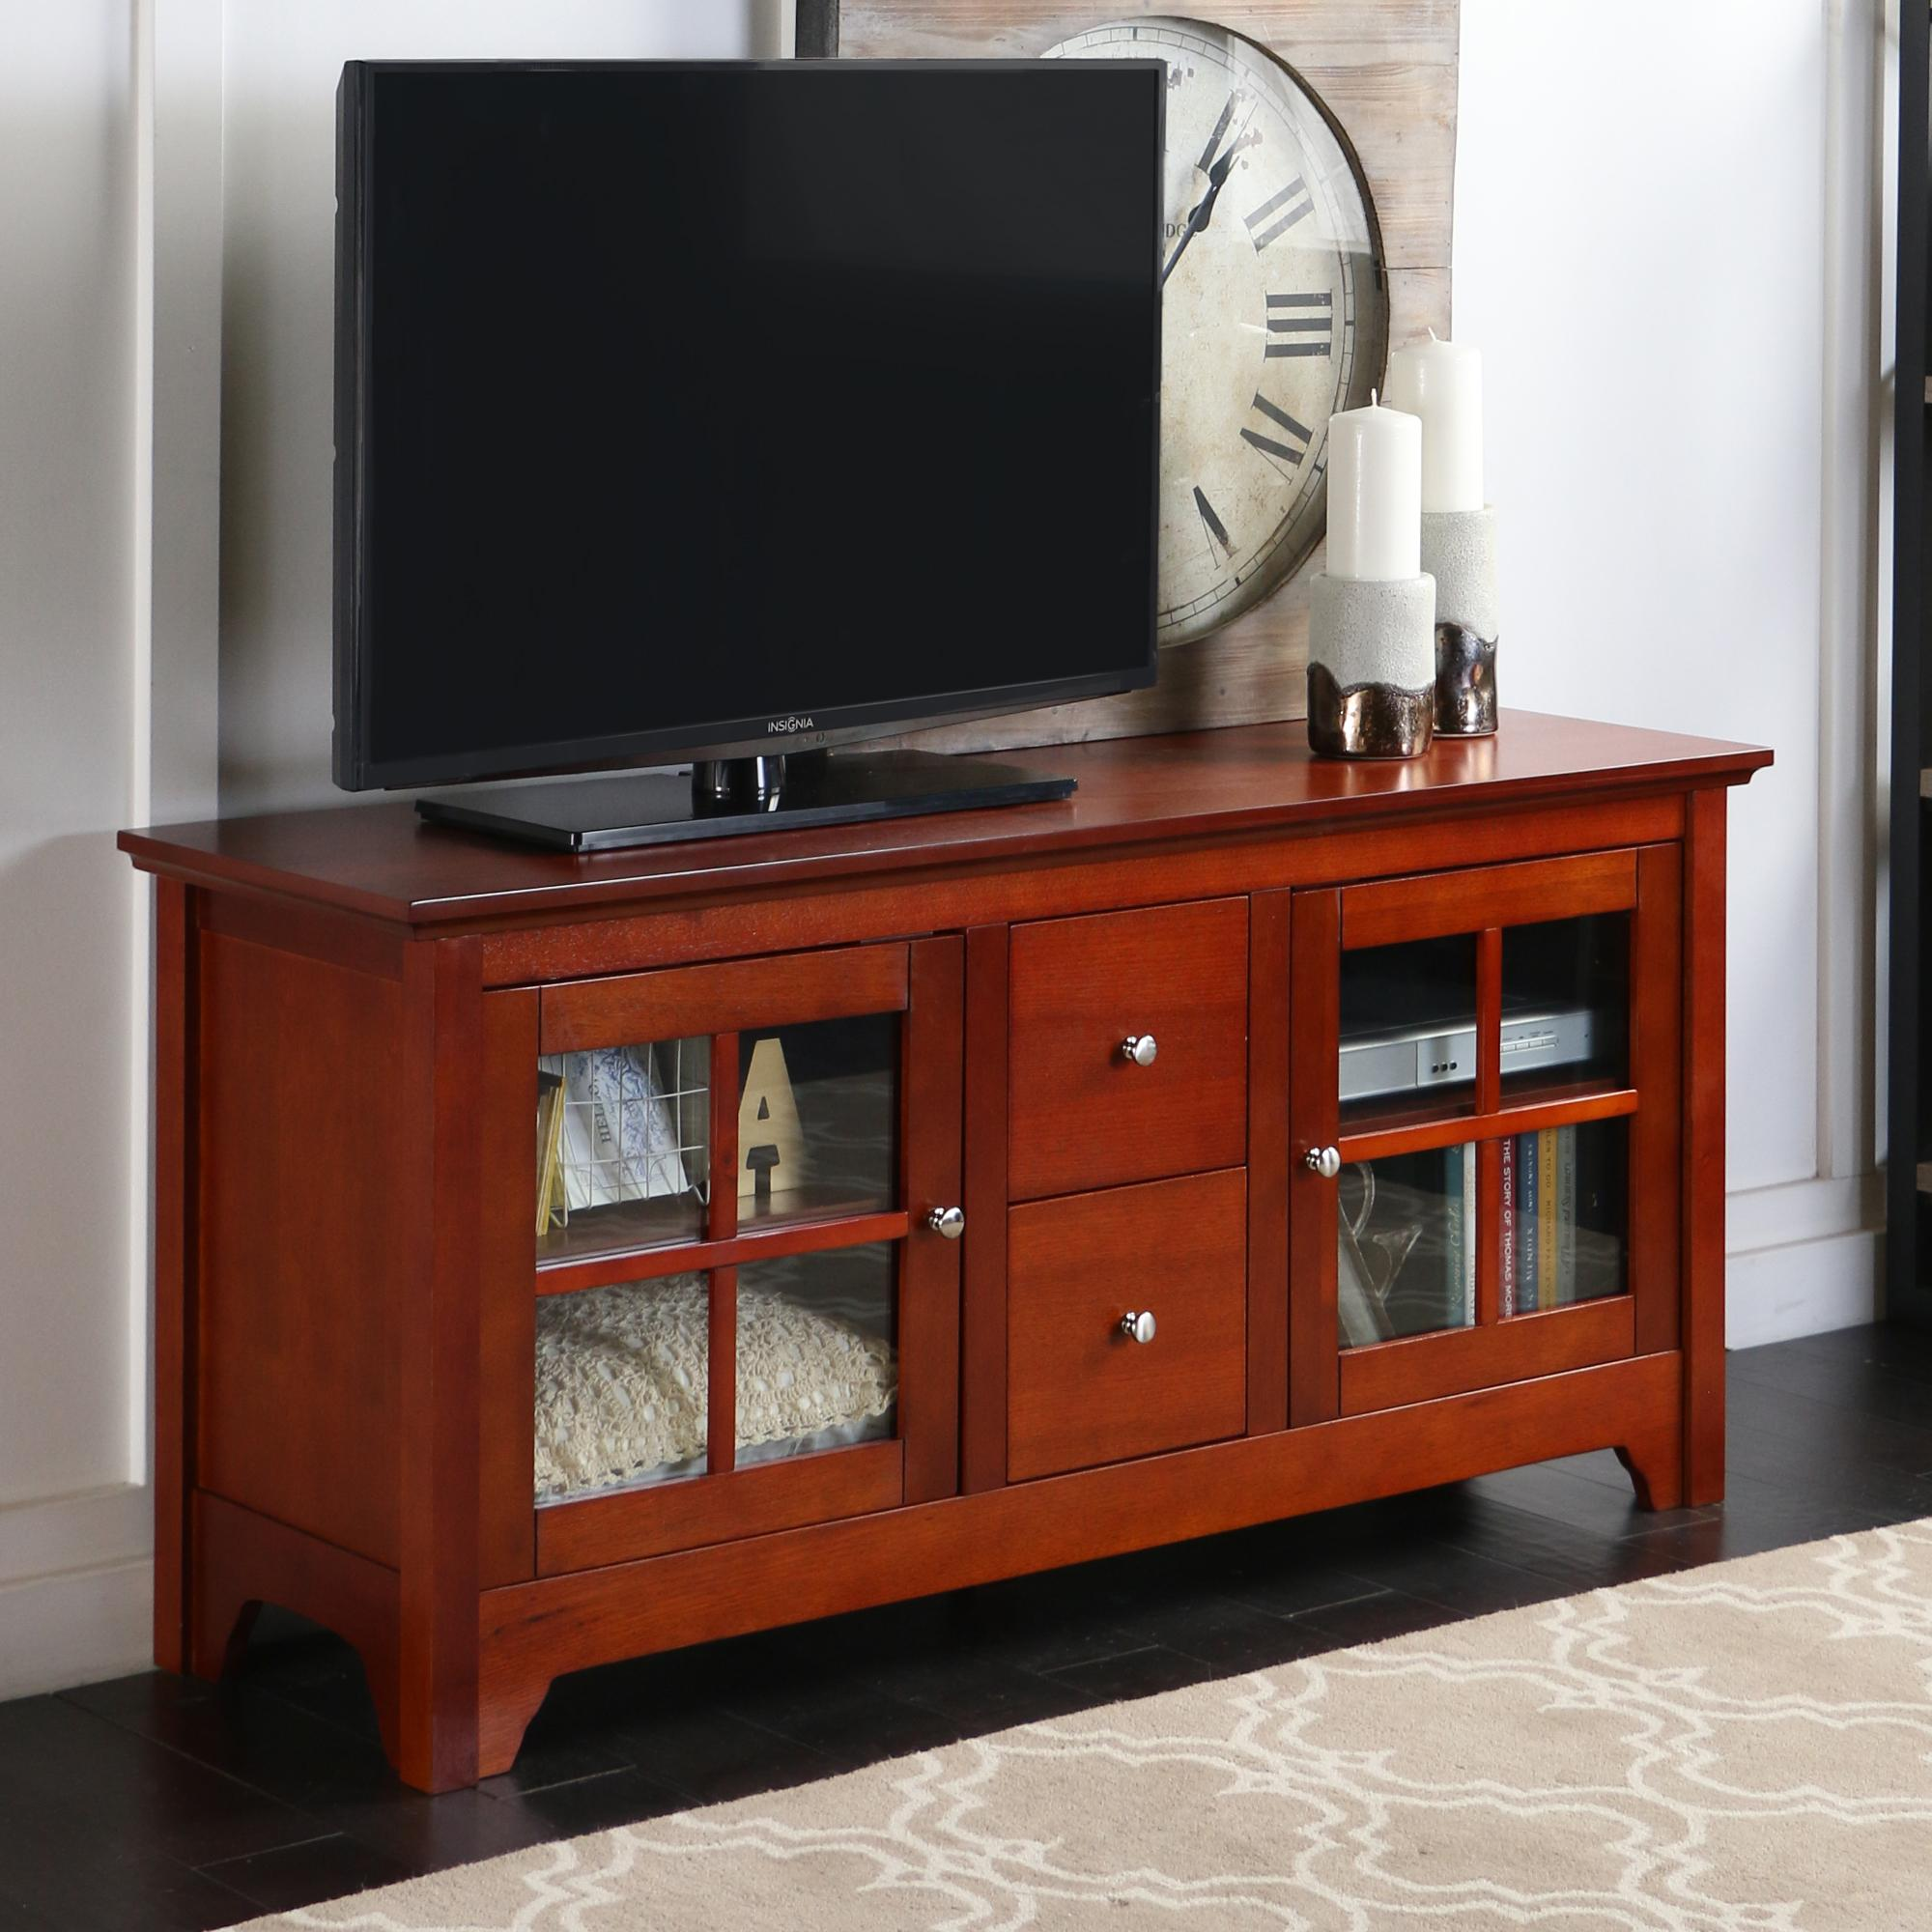 Walker edison inch wood tv stand console with drawers